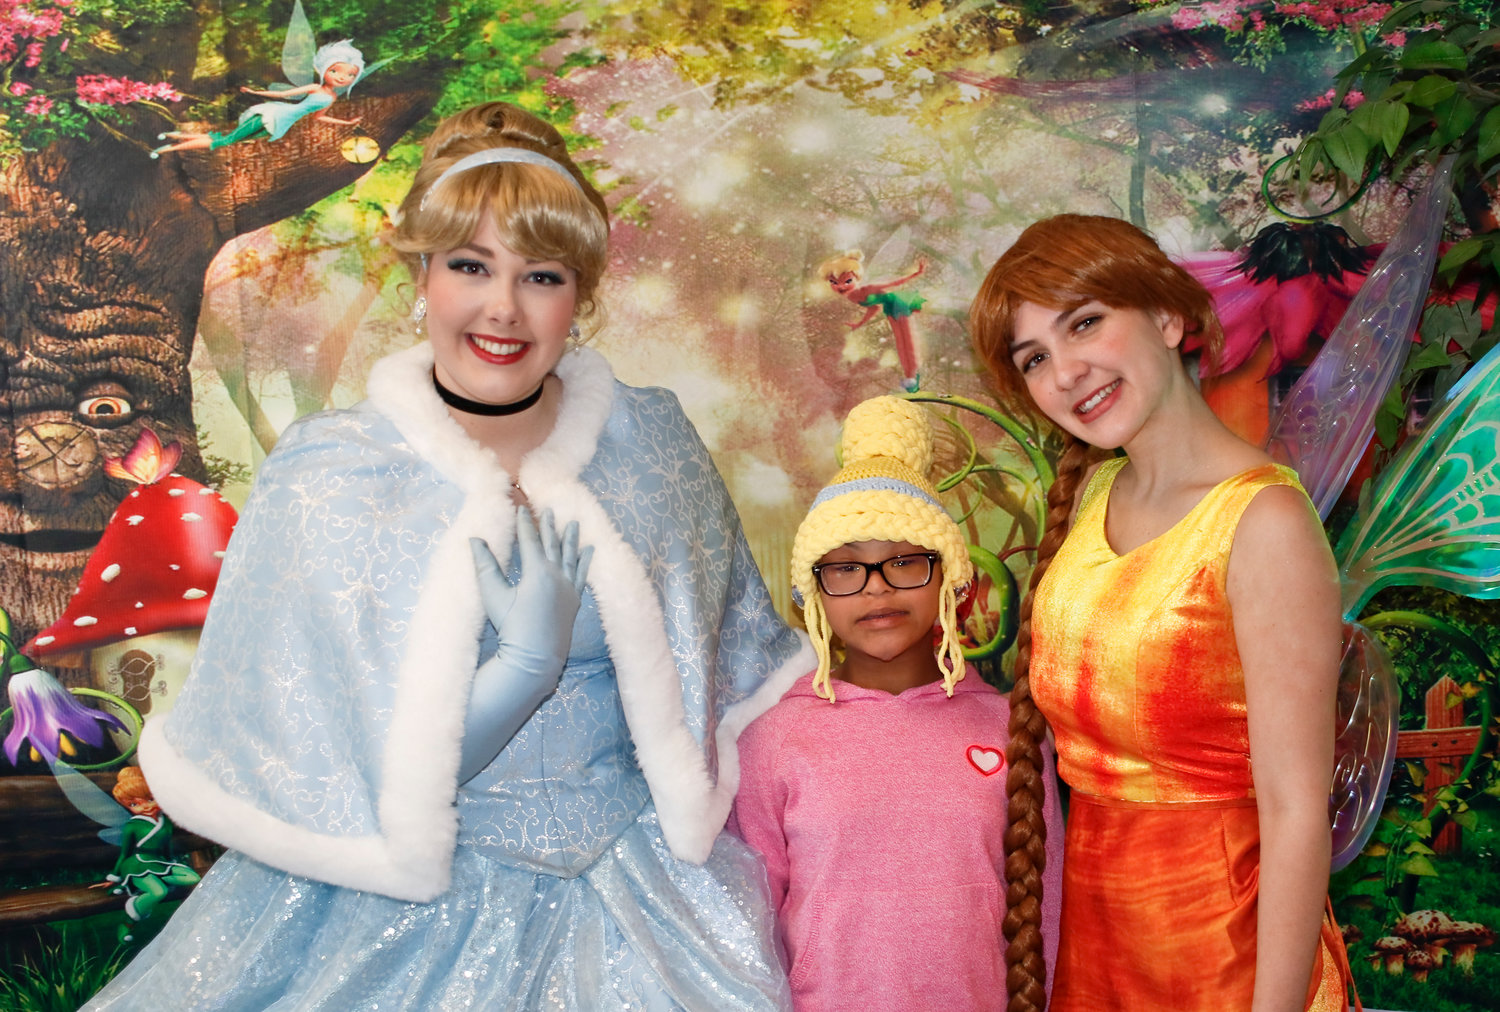 Members of the Magic Yarn Project, who were dressed as Disney characters, surprised Sydney Clarke, a fourth-grader at Davison Avenue Intermediate School in Malverne, with gifts and two Disney-inspired wigs on Jan. 31.